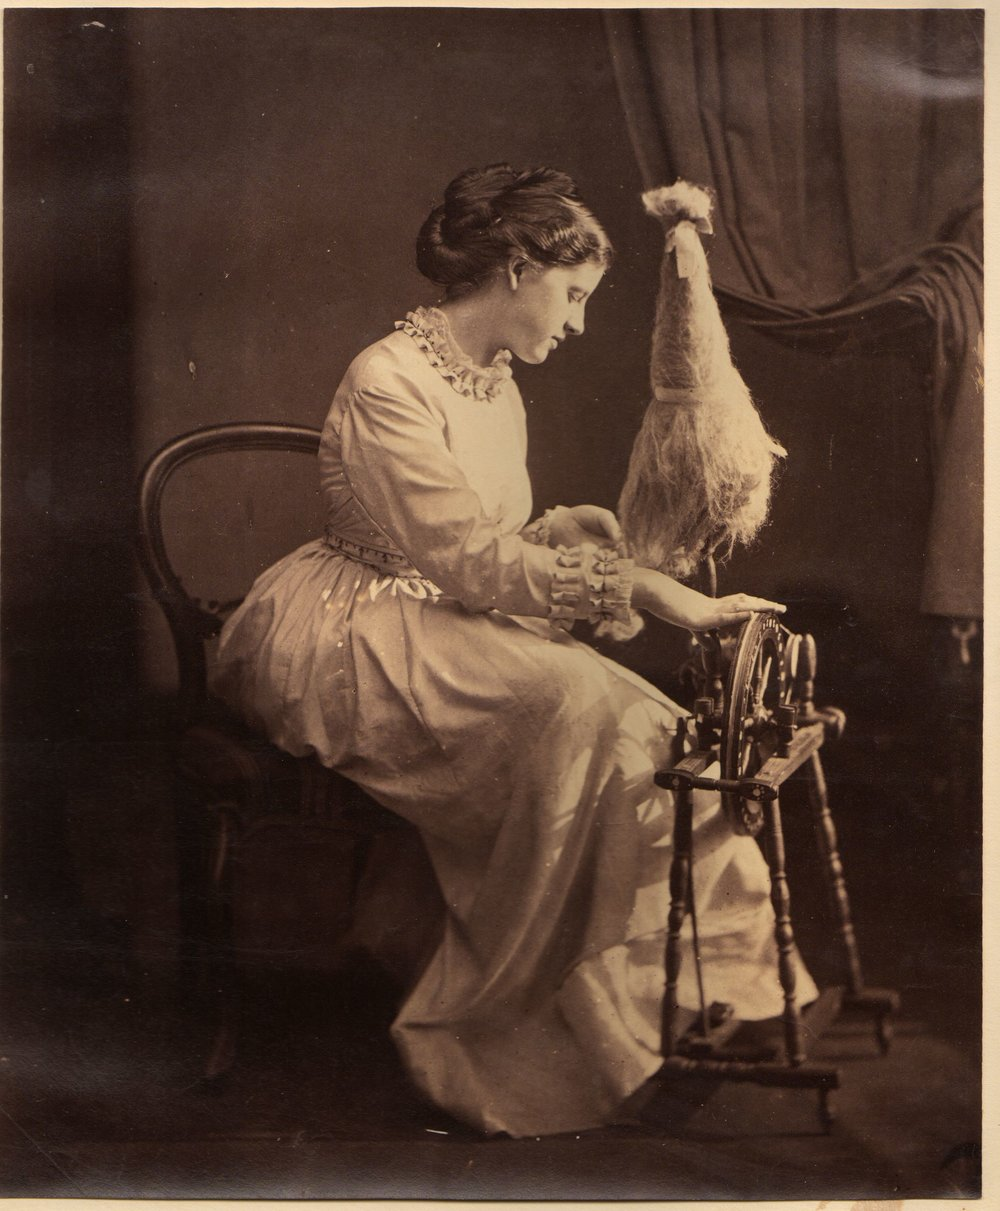 Woman Spinning, possibly by Rejlander